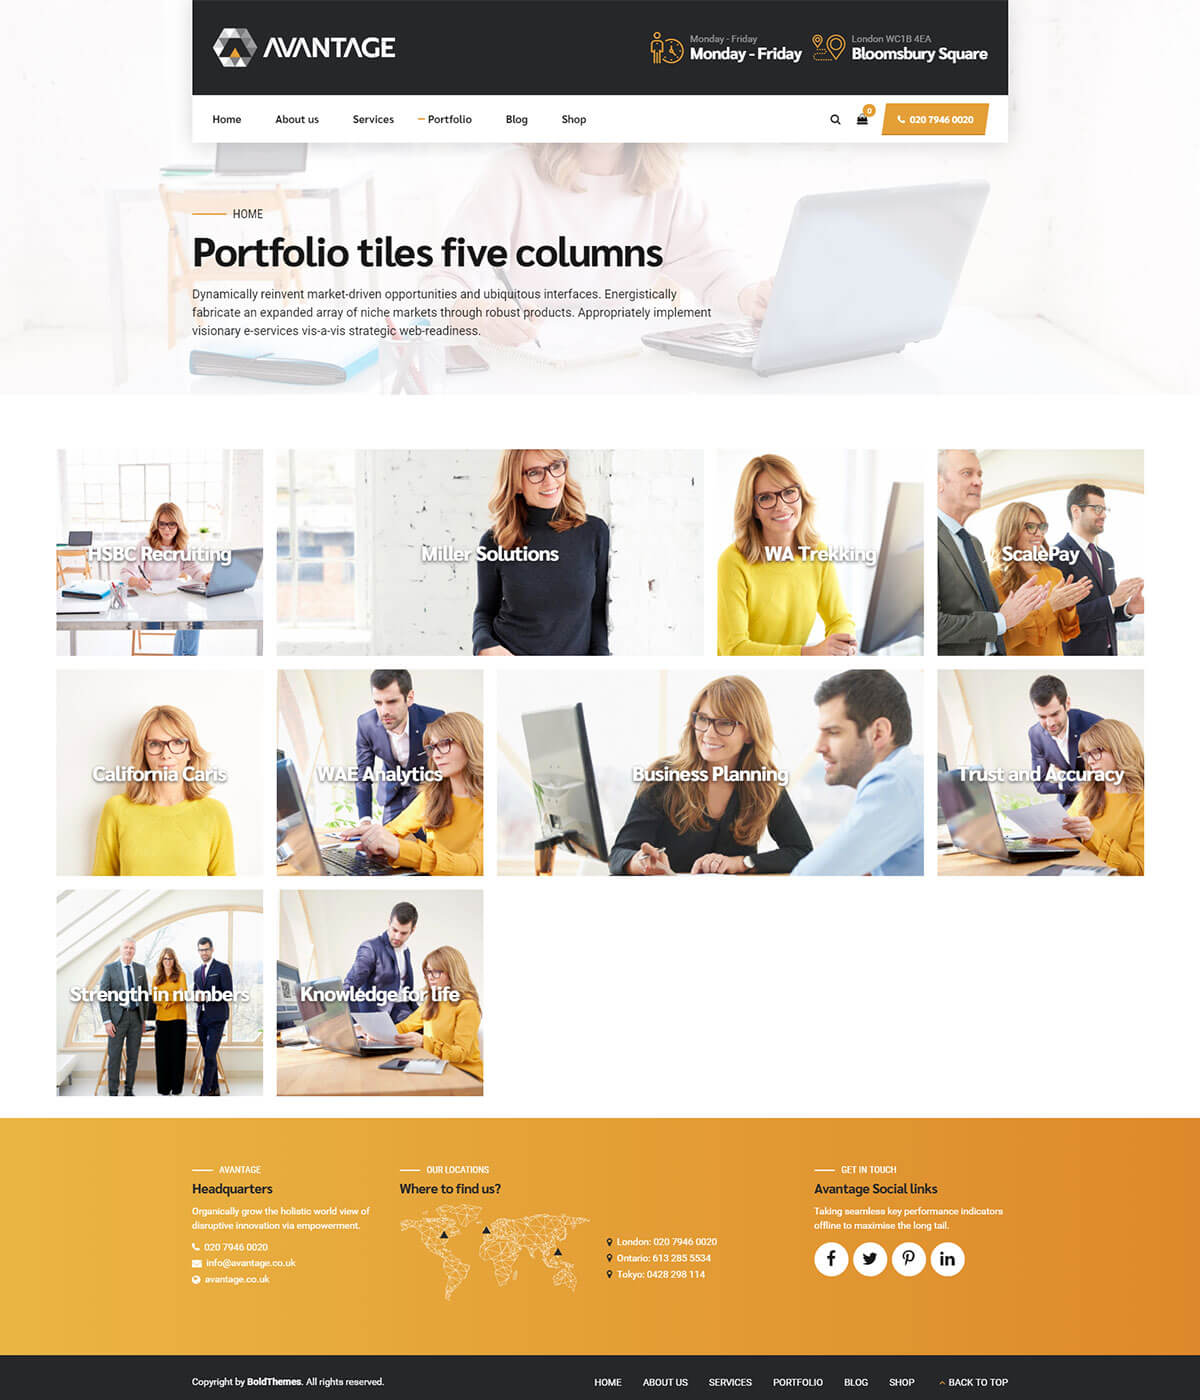 http://avantage.bold-themes.com/wp-content/uploads/2019/05/marketing-12-portfolio.jpg